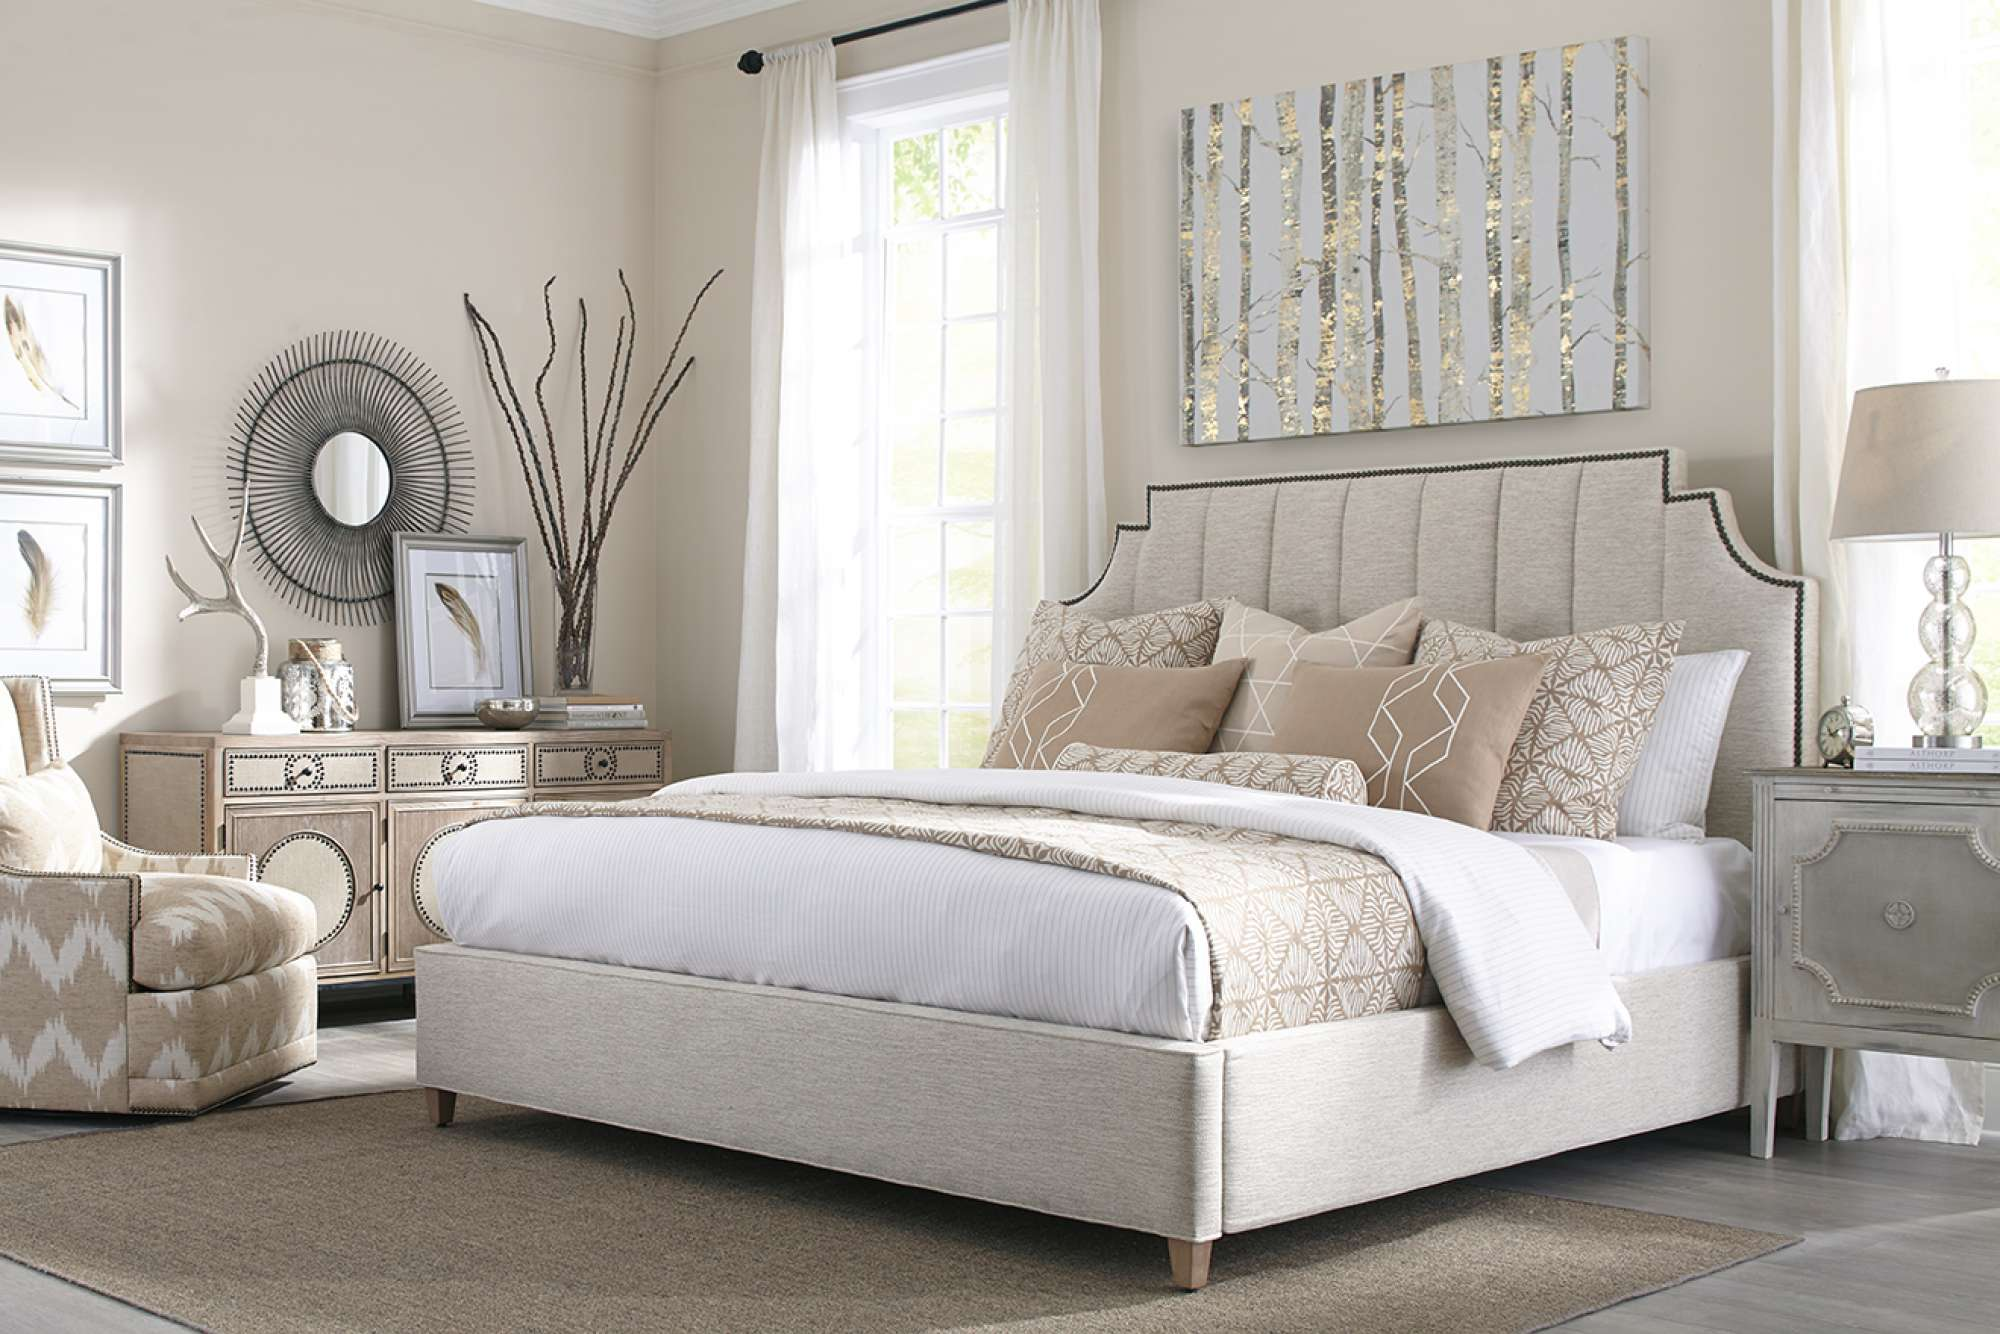 Rowe Bed and Headboard design